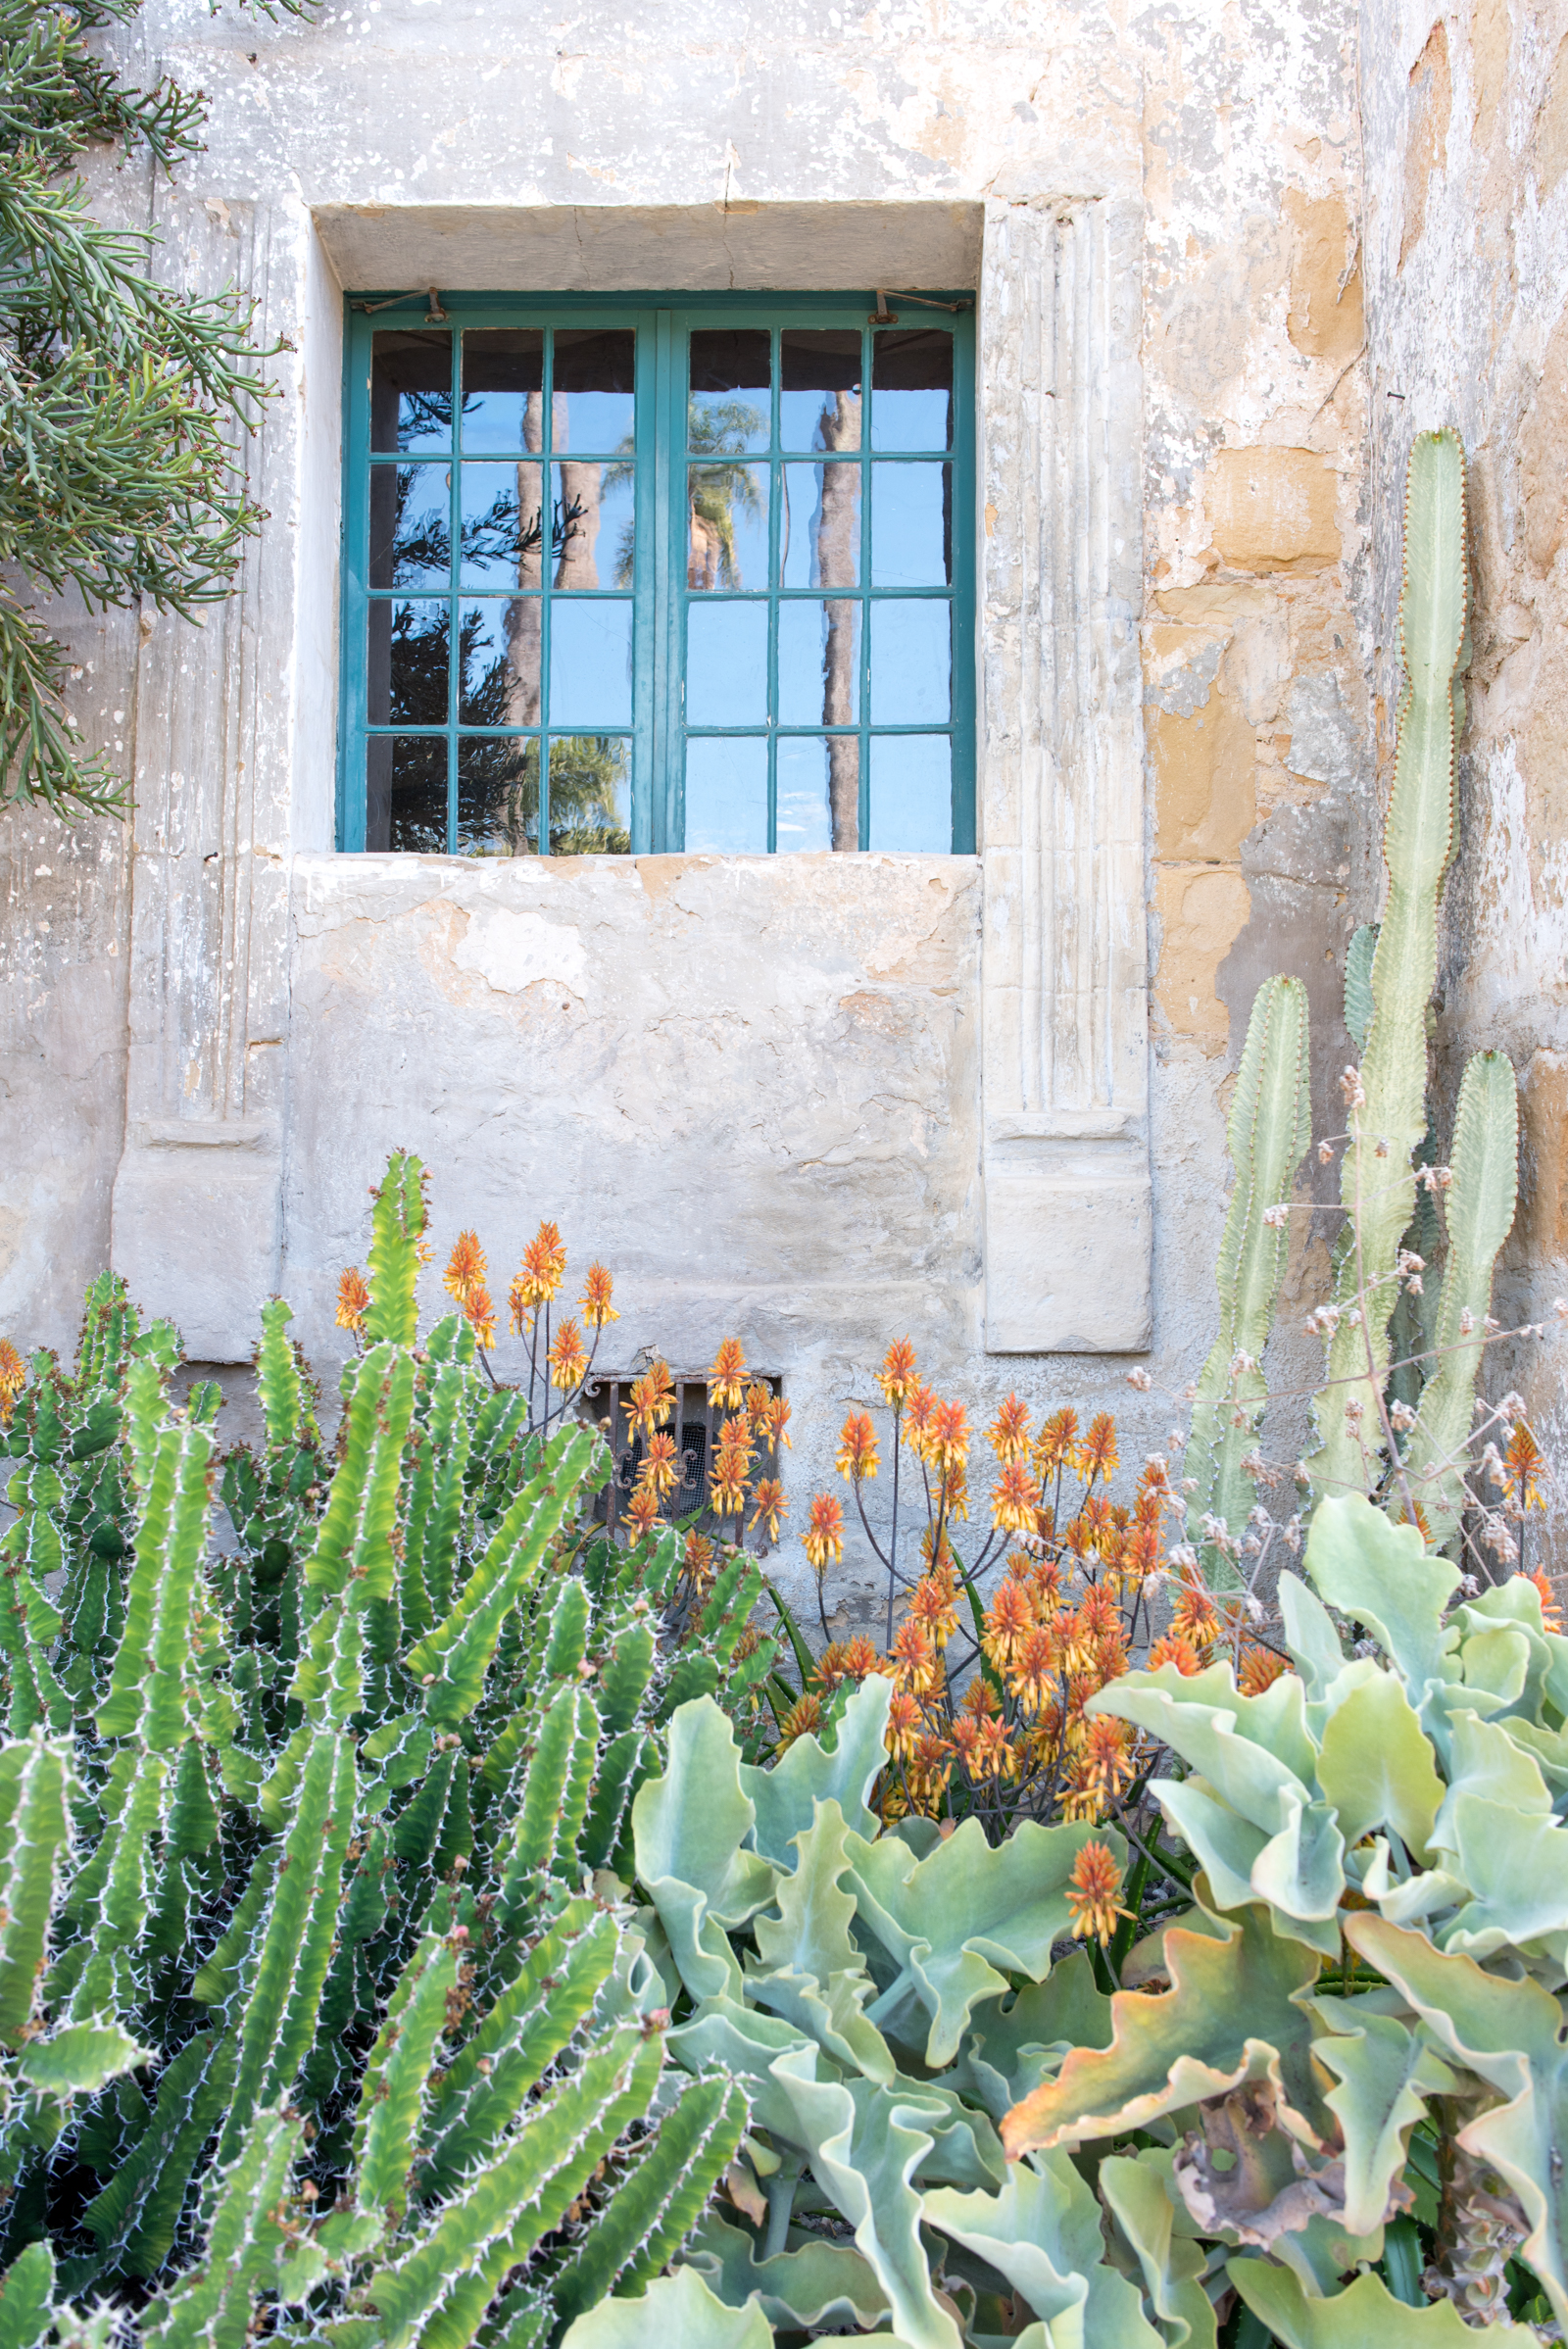 The Santa Barbara Mission by French Californian